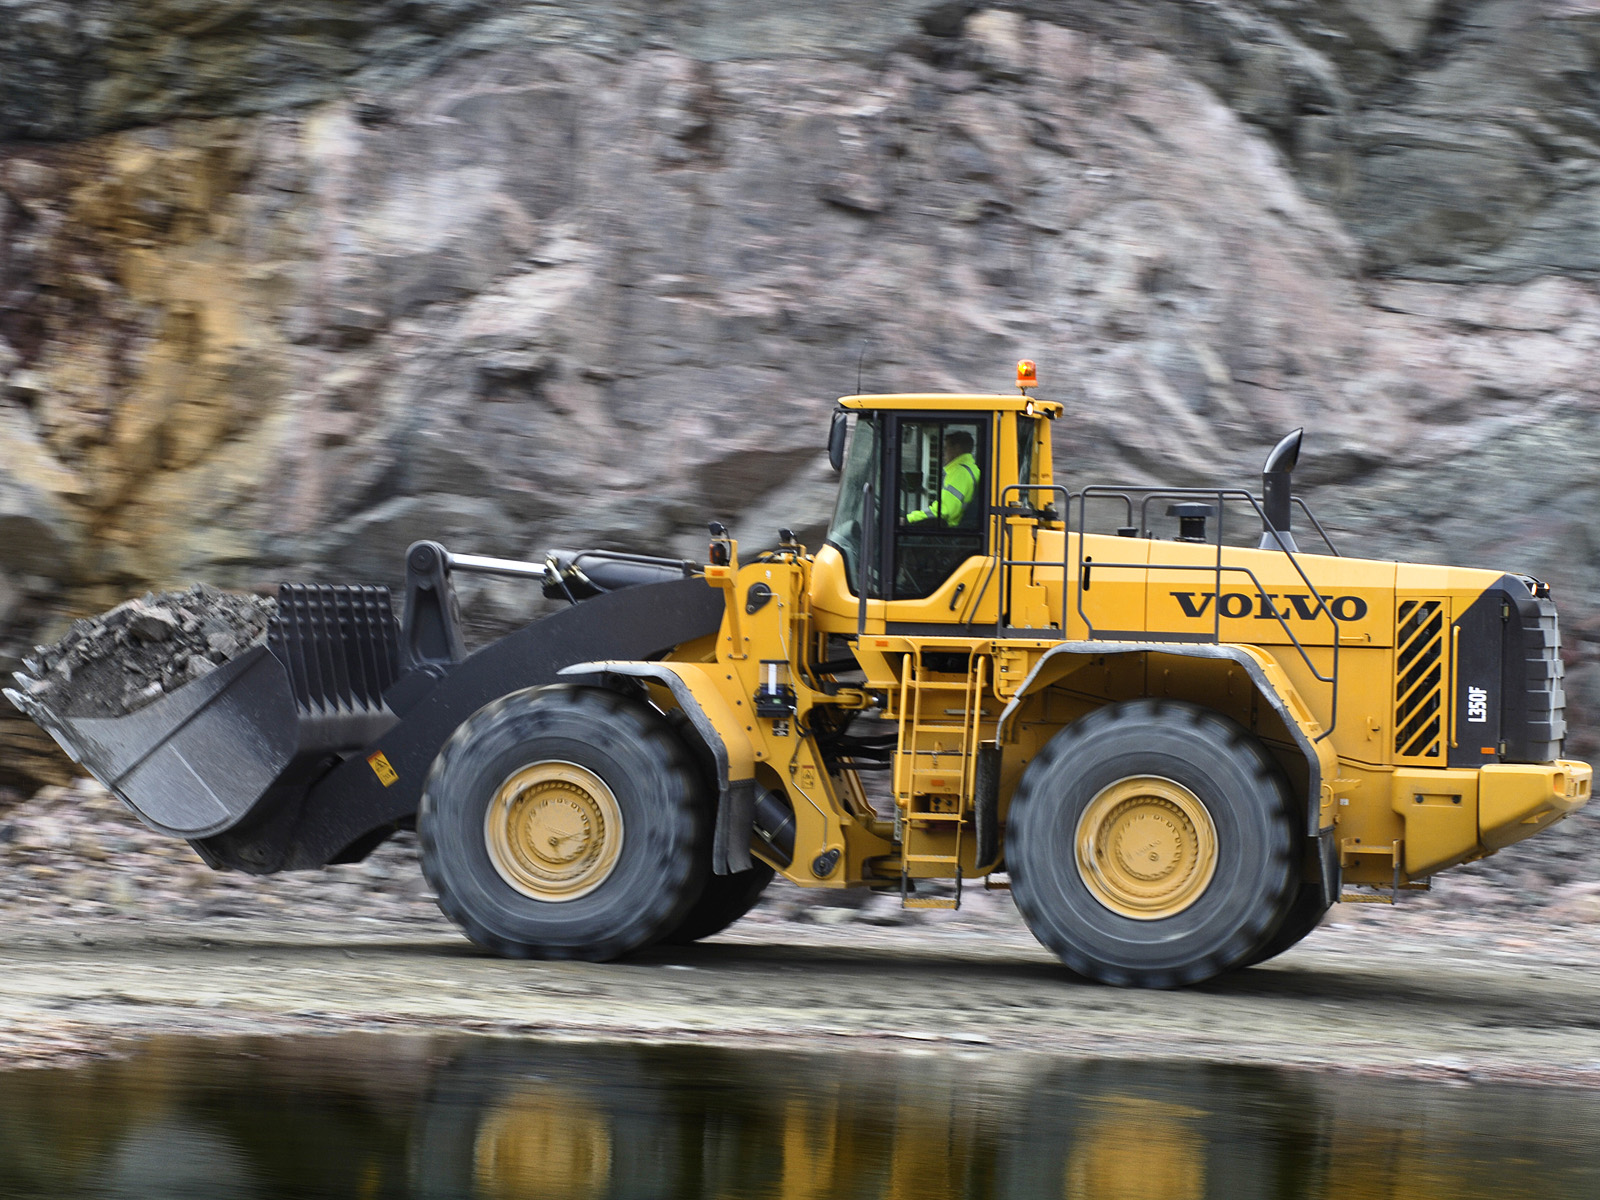 Volvo L350f Photos Photogallery With 12 Pics Carsbase Com